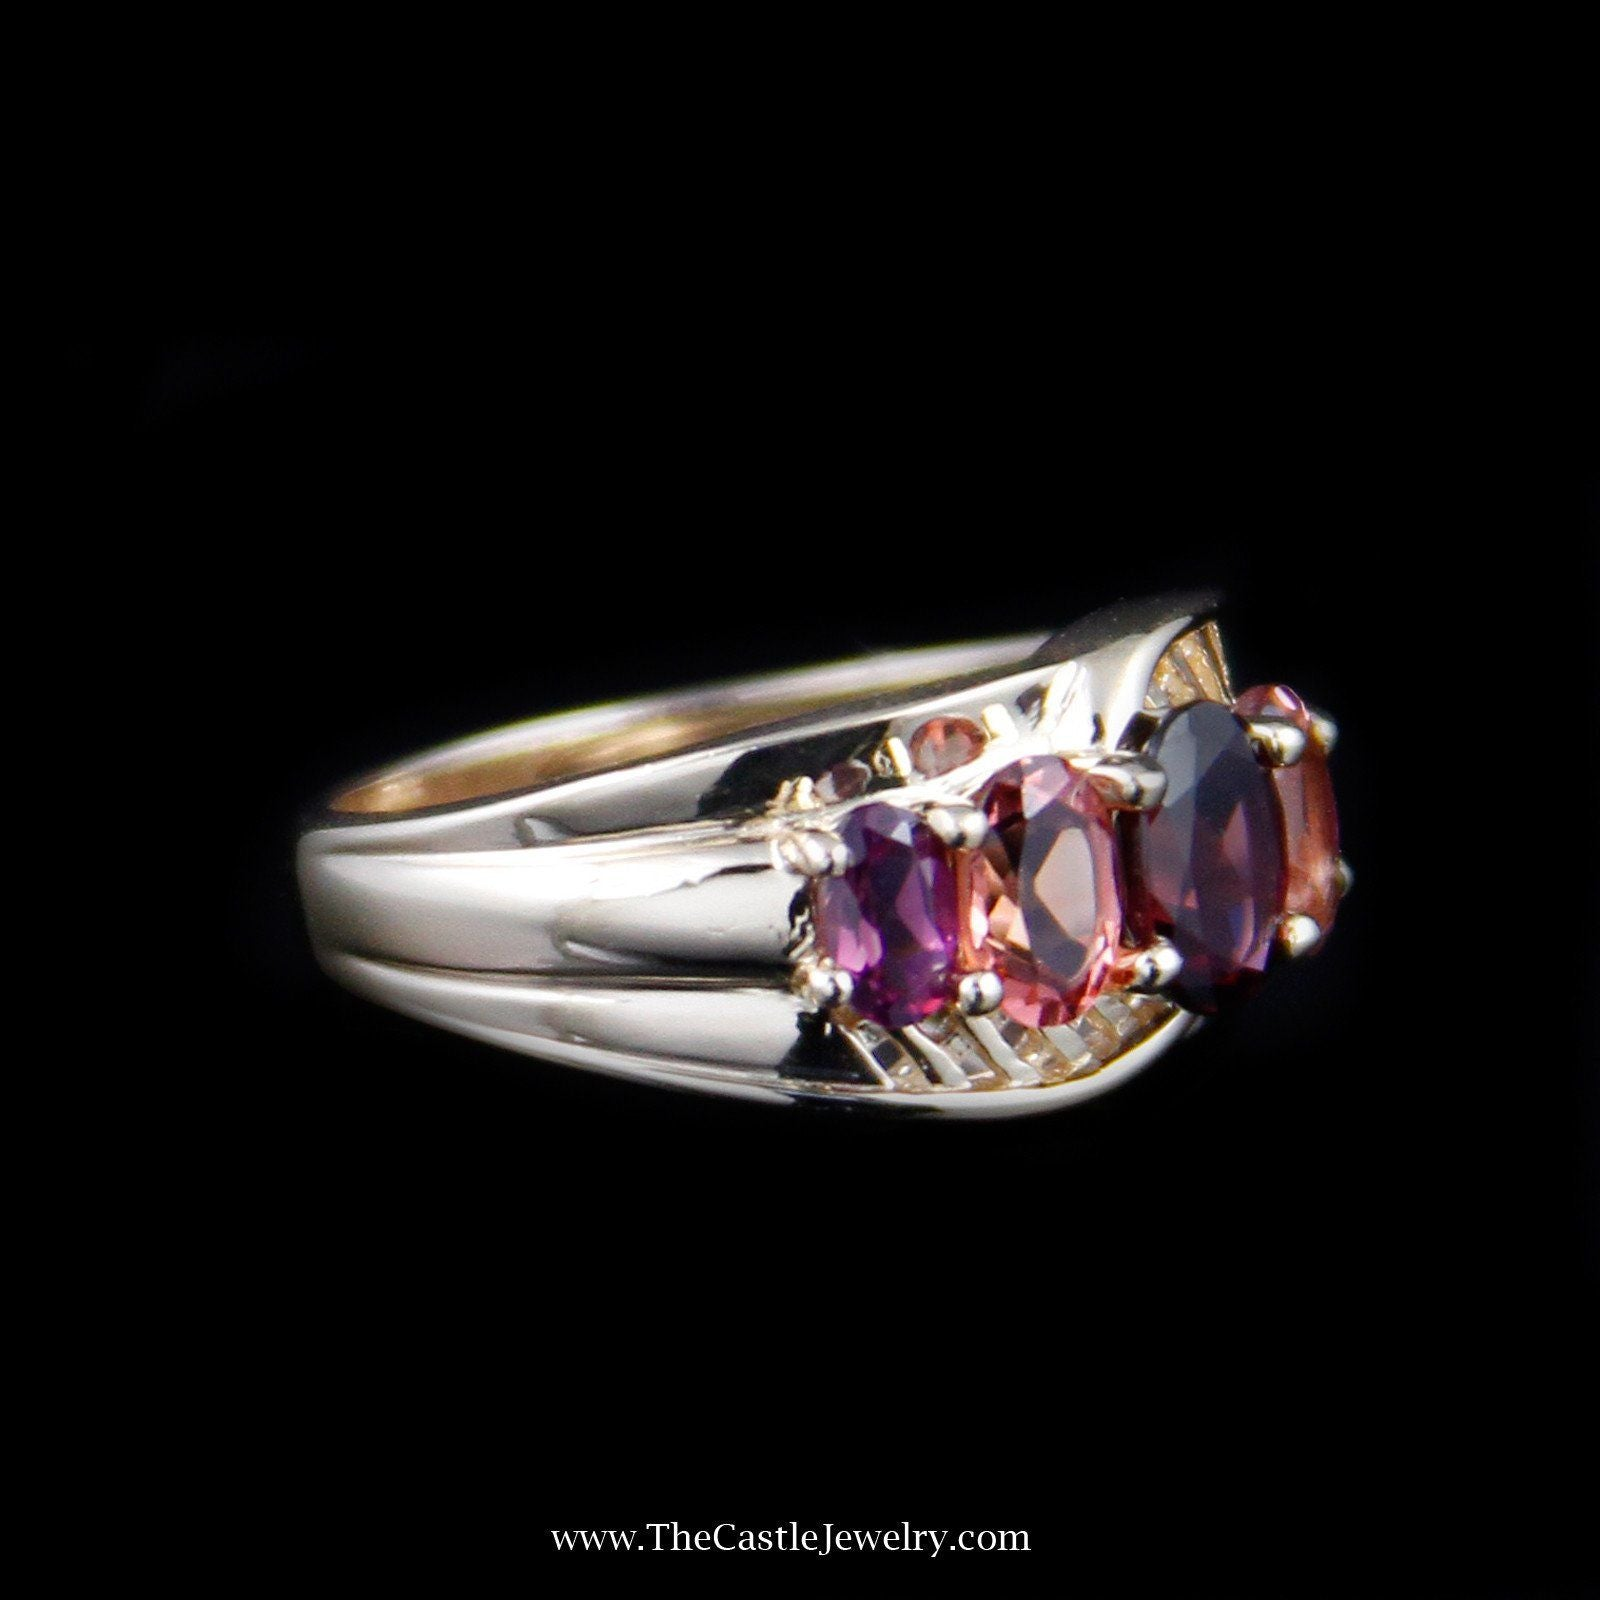 Beautiful Oval Rhodolite Garnet & Morganite Gemstone Ring in 14K Yellow Gold-2